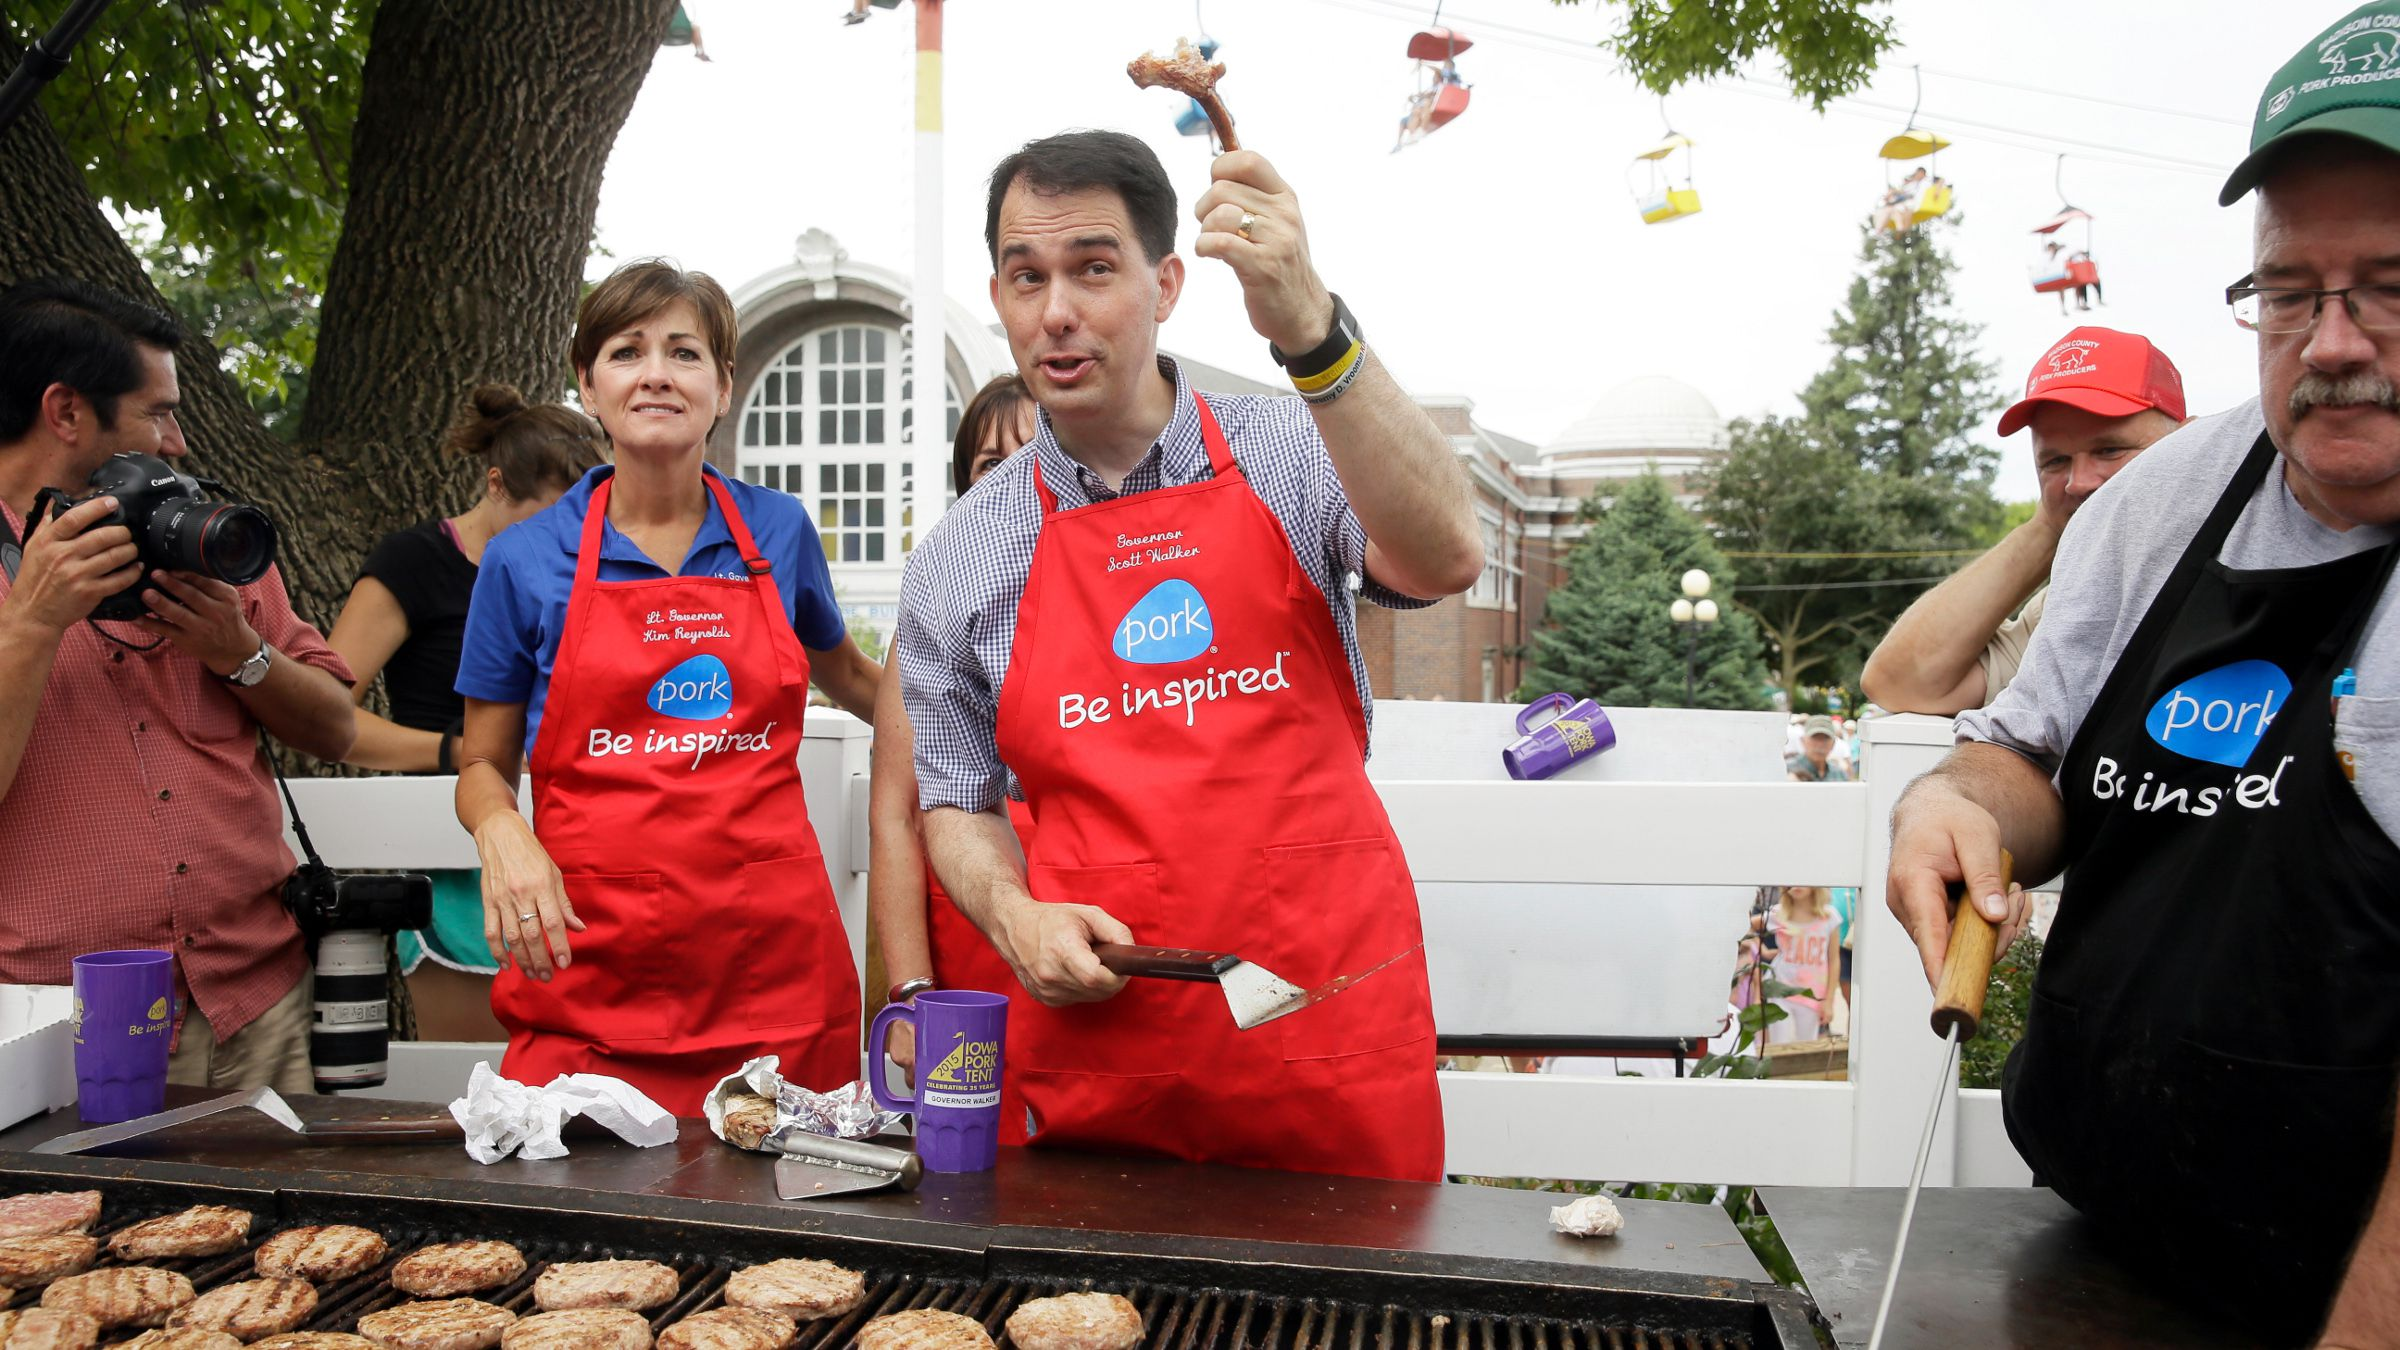 Republican presidential candidate Wisconsin Gov. Scott Walker holds up a pork chop bone while working the grill at the Iowa Pork Producers tent during a visit to the Iowa State Fair, Monday, Aug. 17, 2015, in Des Moines, Iowa.